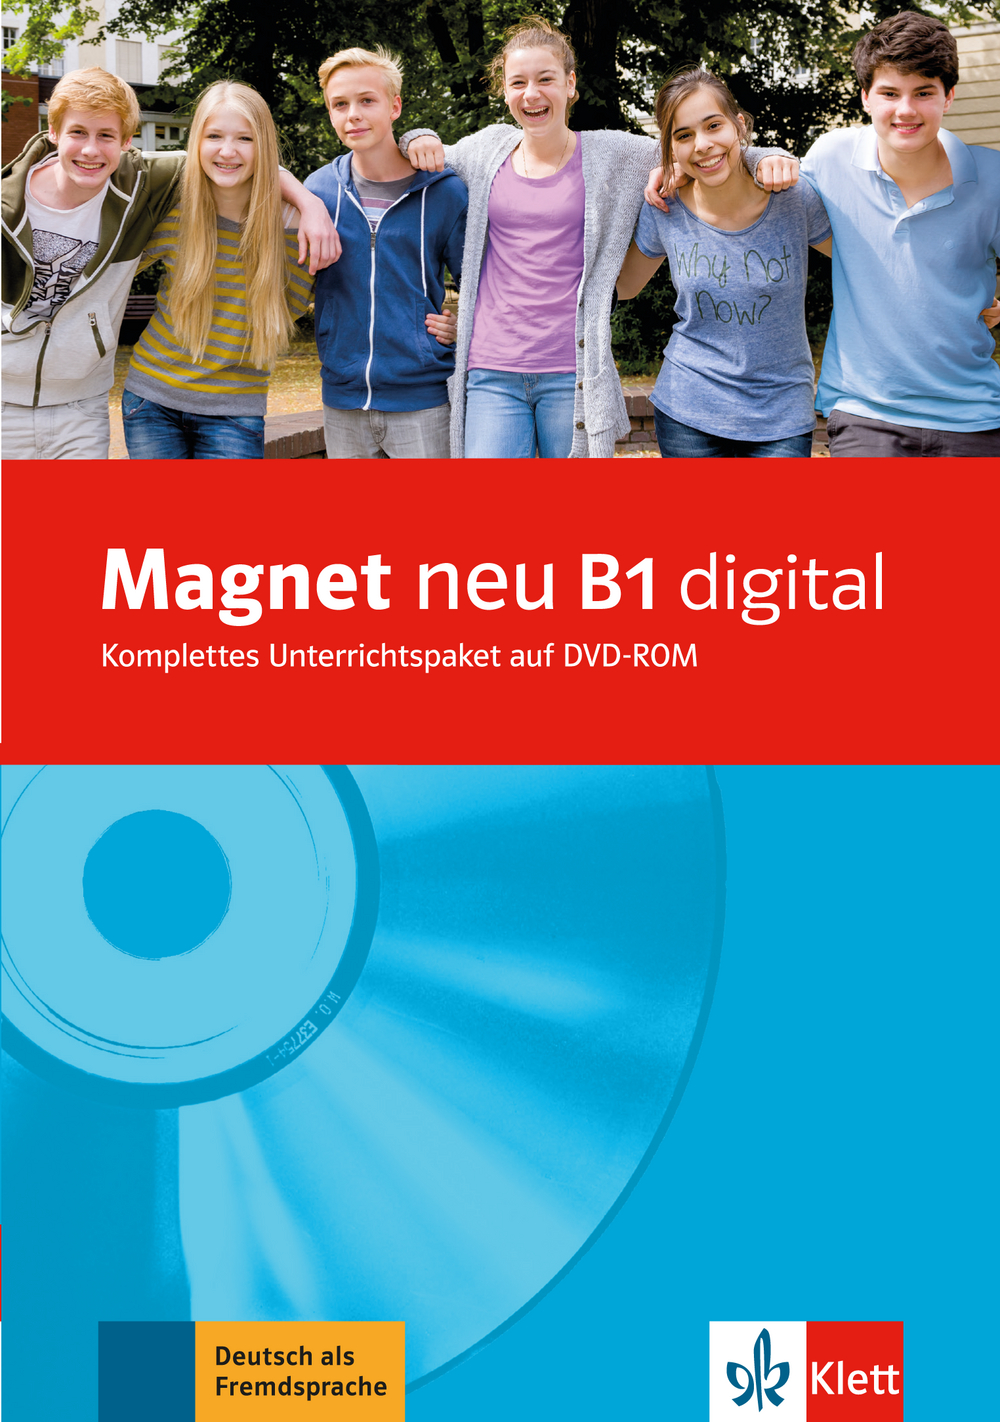 Magnet neu B1 digital